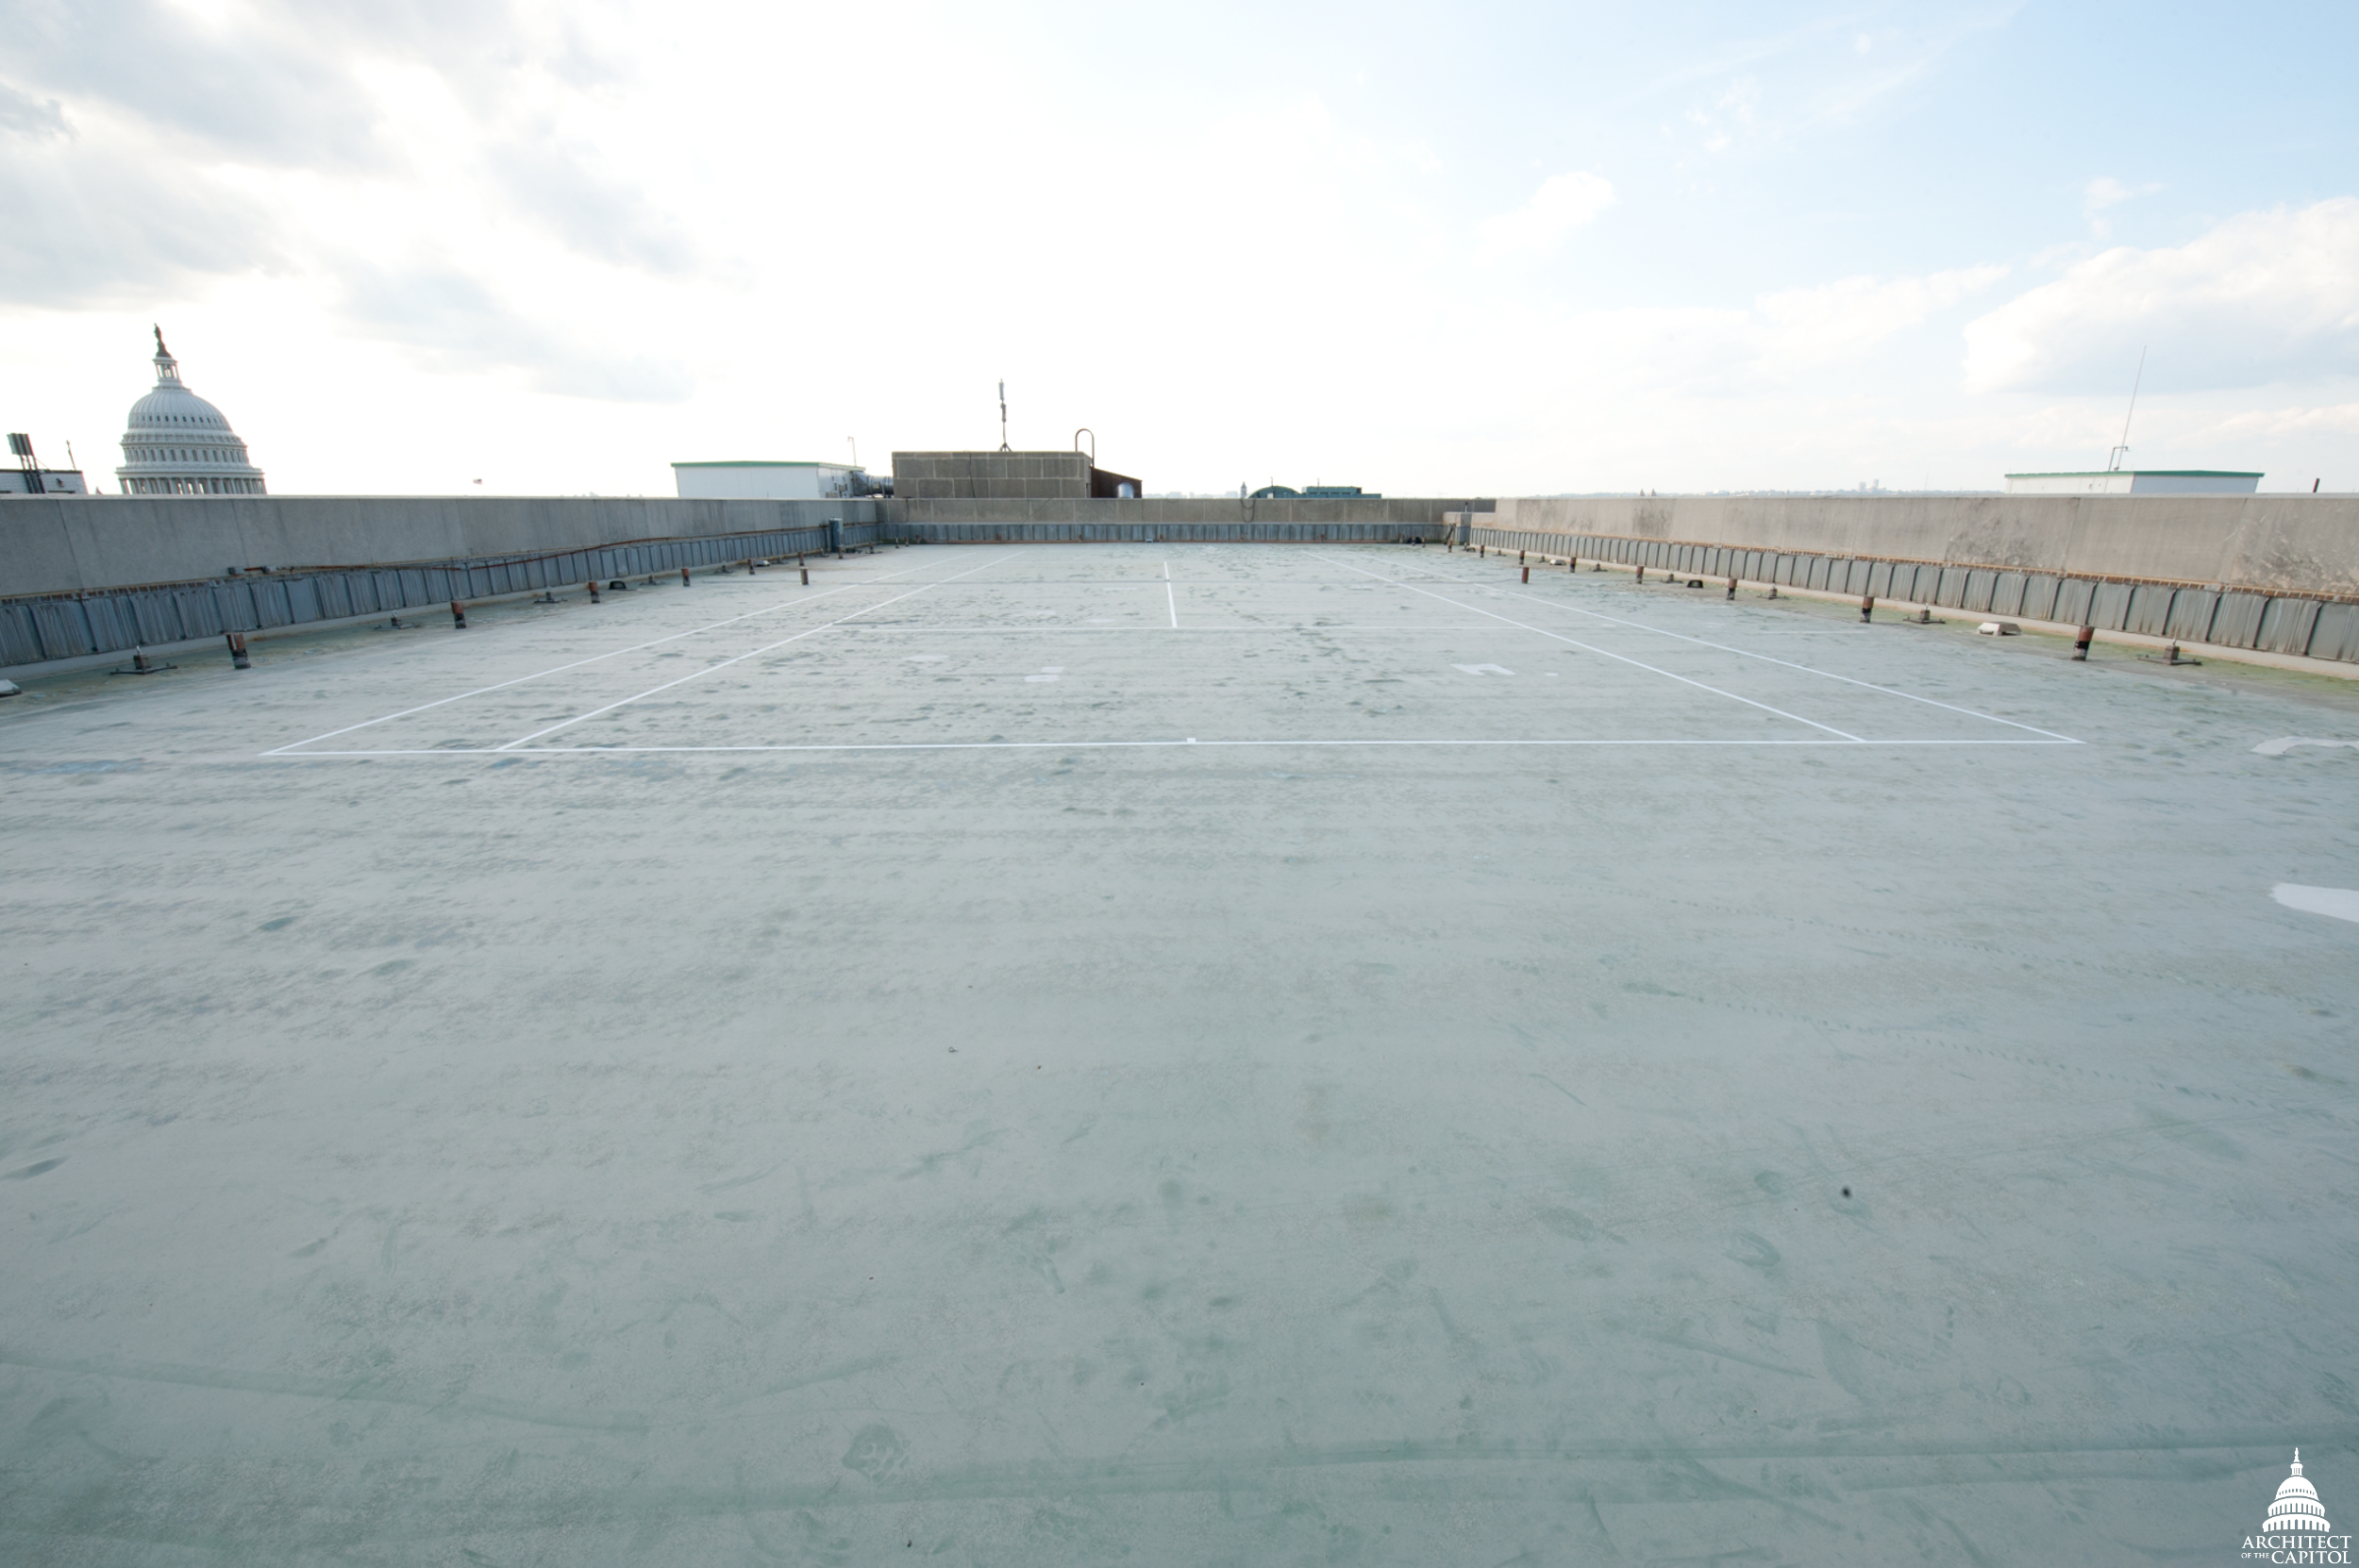 The middle section of the Dirksen Senate Office Building roof, prior to construction.